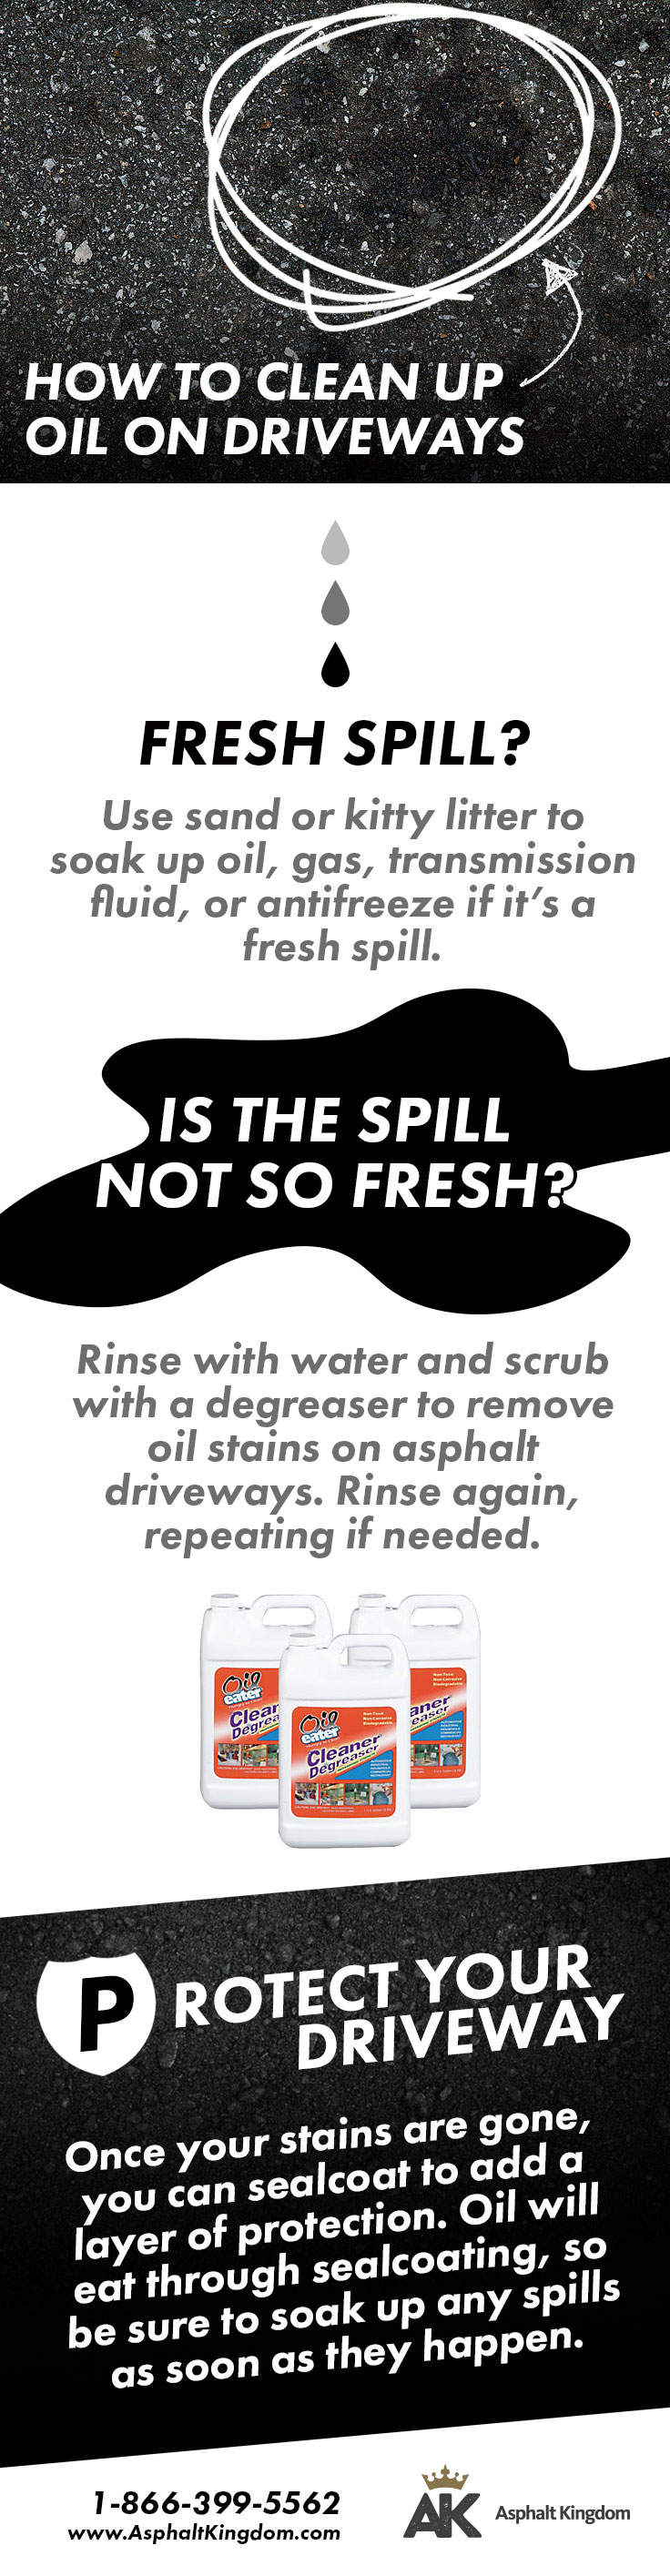 Oil on Driveway Infographic